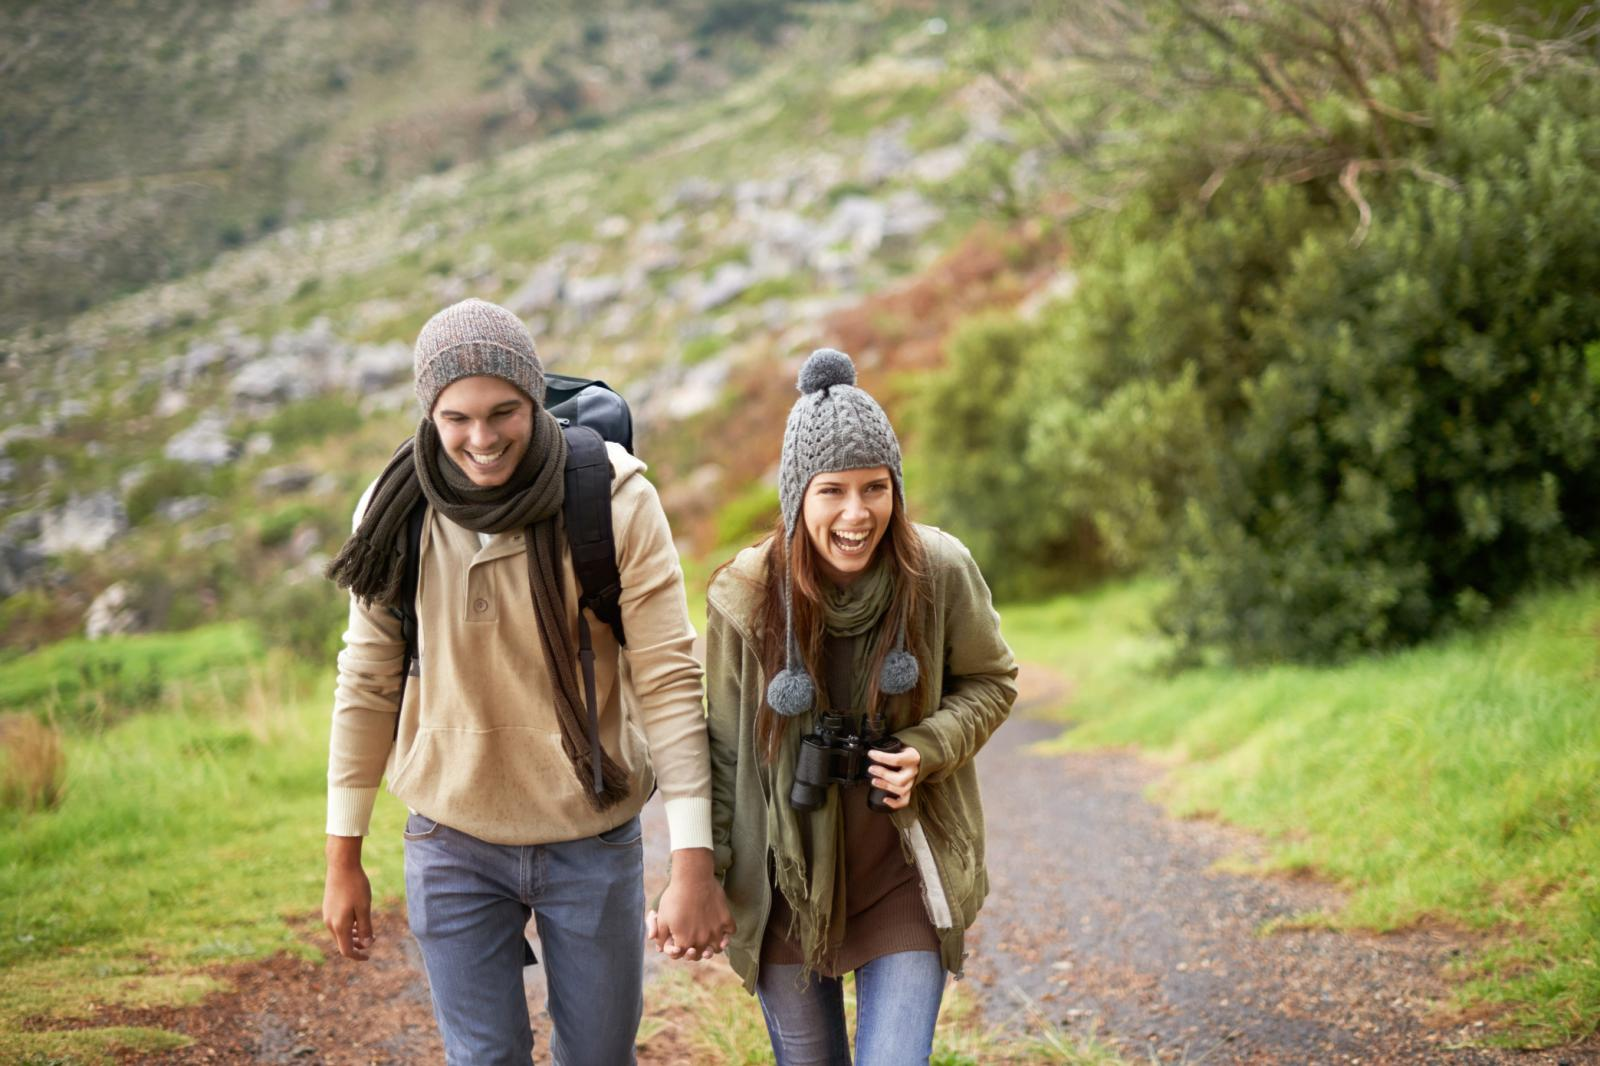 Young couple wrapped up warmly and hiking on a mountain trail together